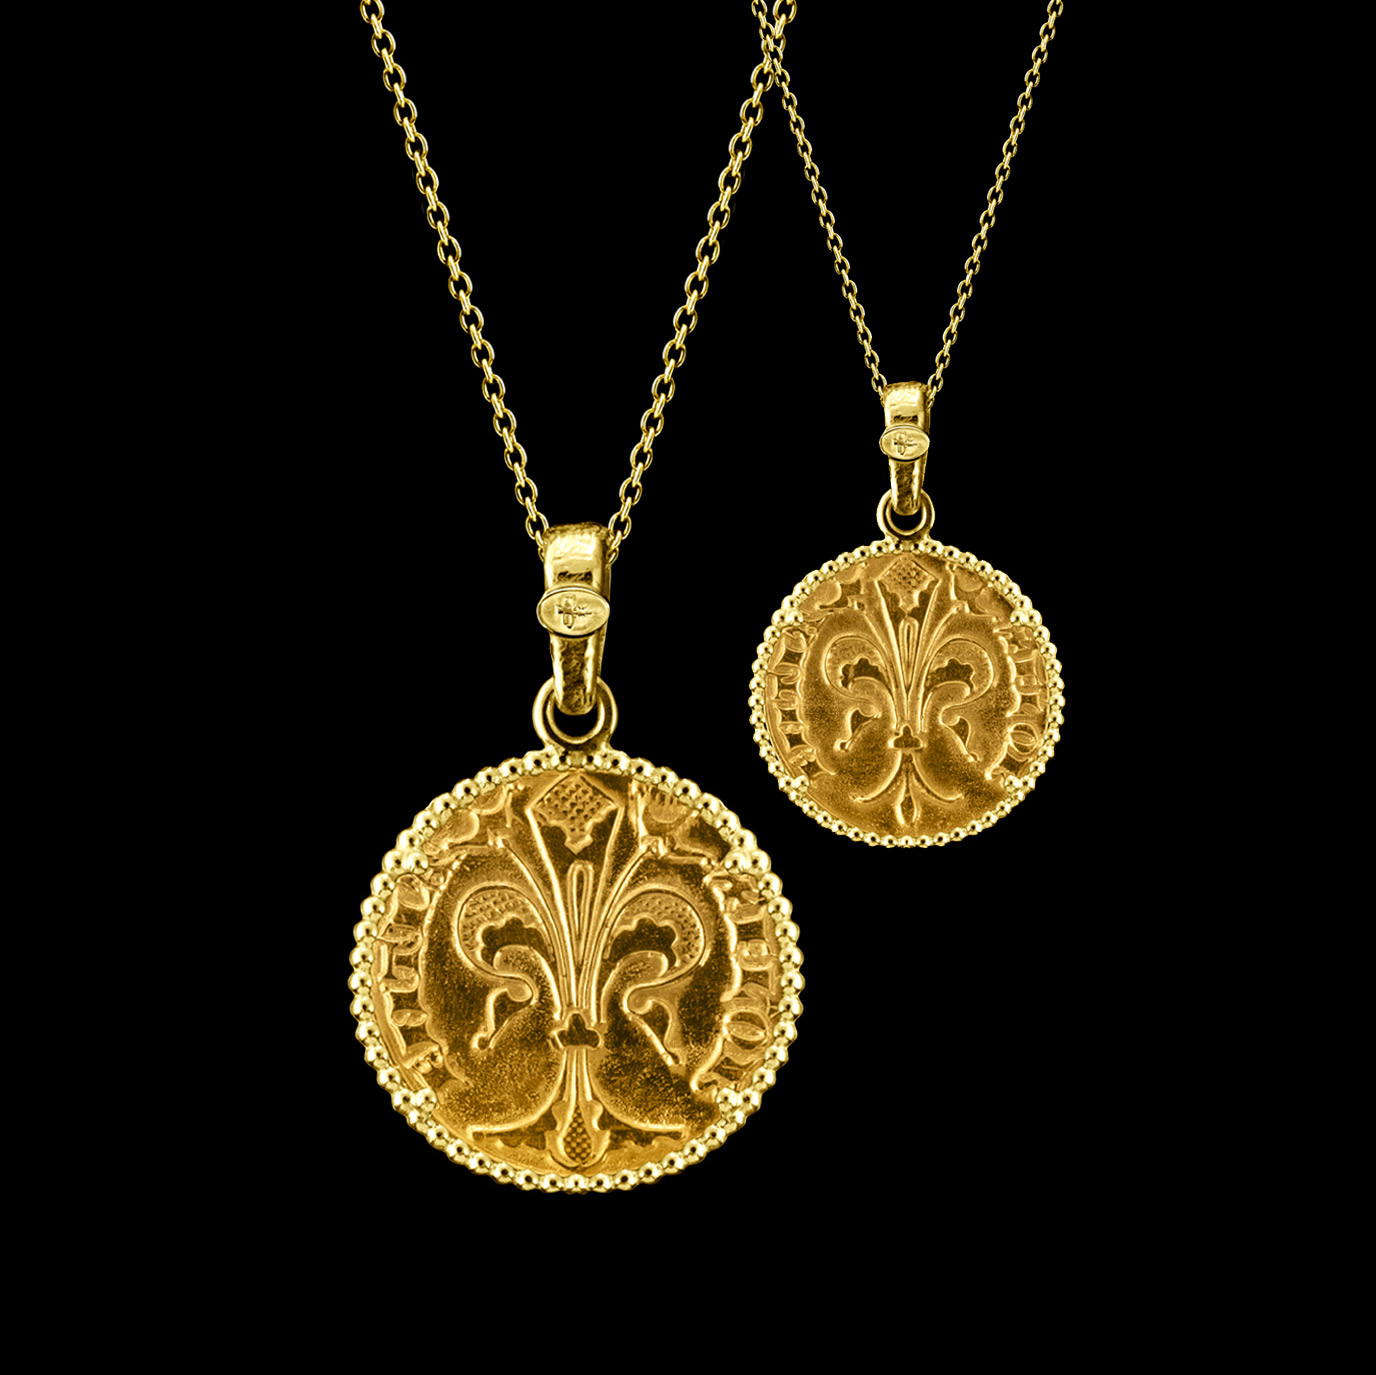 original florin coin necklace 24kt gold handmade florence jewel torrini perfect 1369